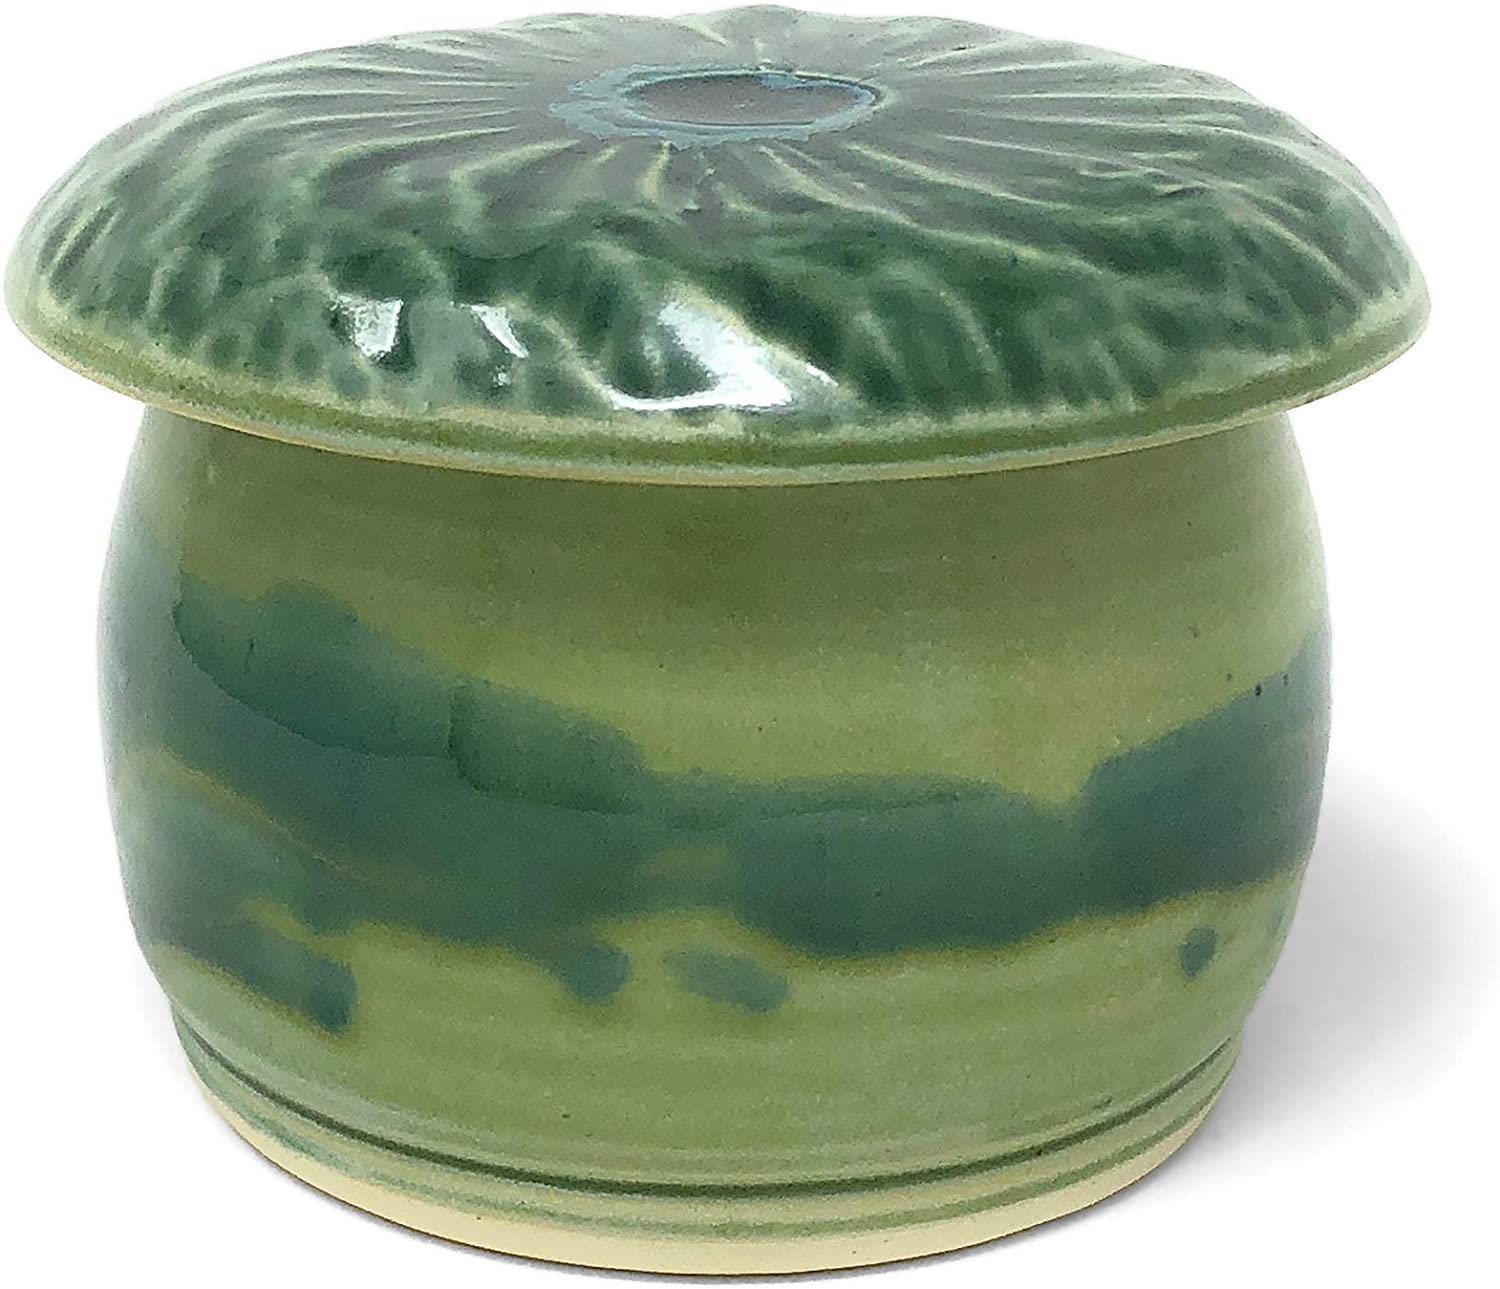 Ole Fish House Pottery Albuquerque Mall French Green Keeper Butter Max 46% OFF Botanical